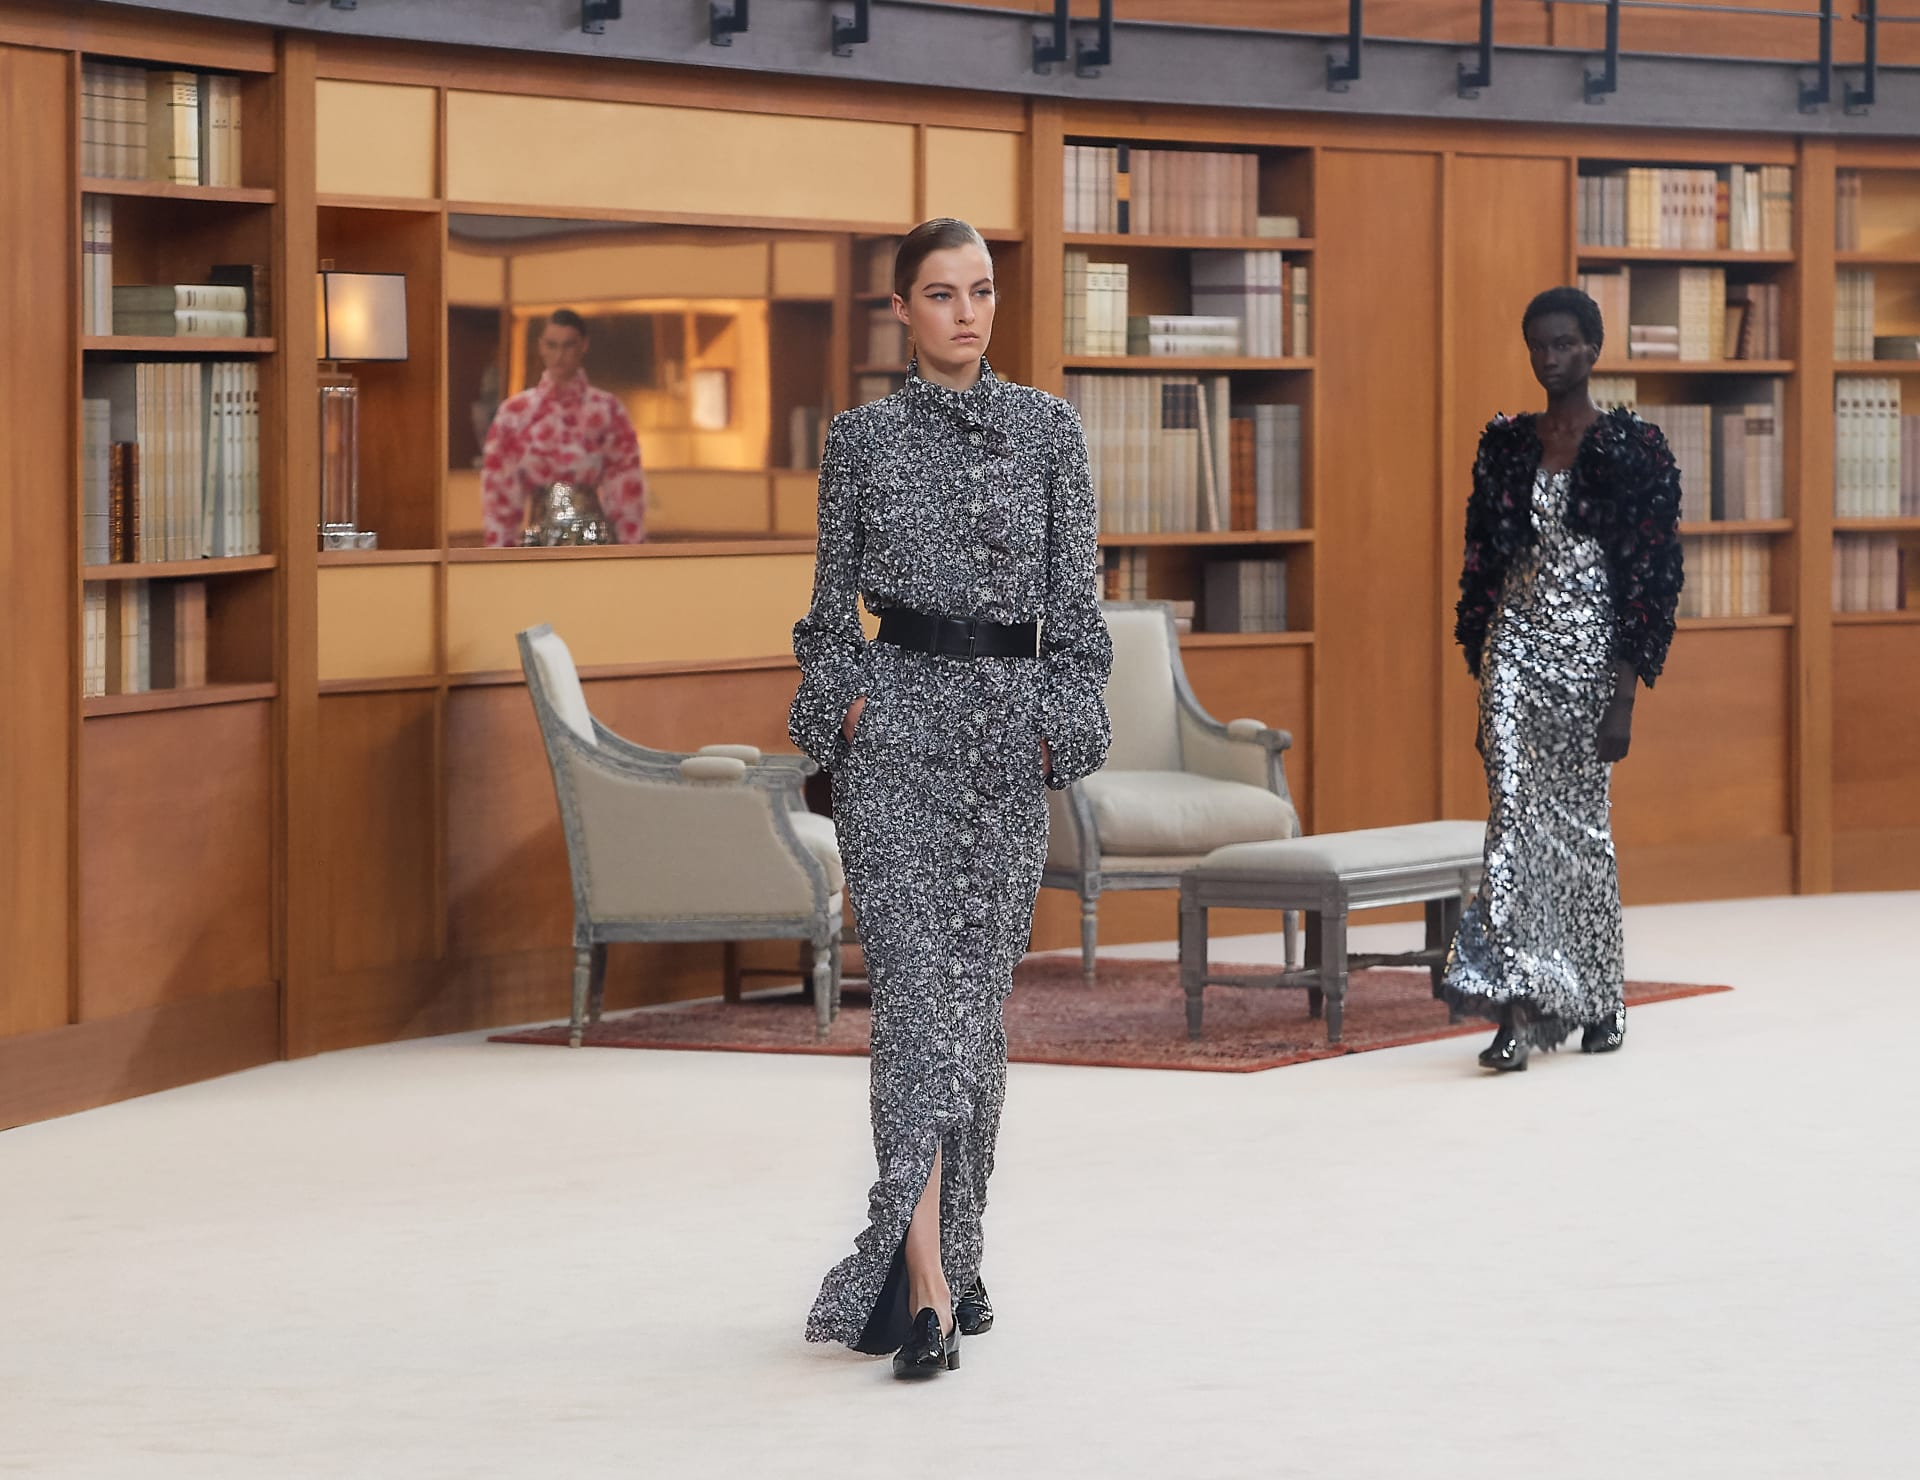 View 1 - Look 46 - Fall-Winter 2019/20 Haute-Couture - see full sized version